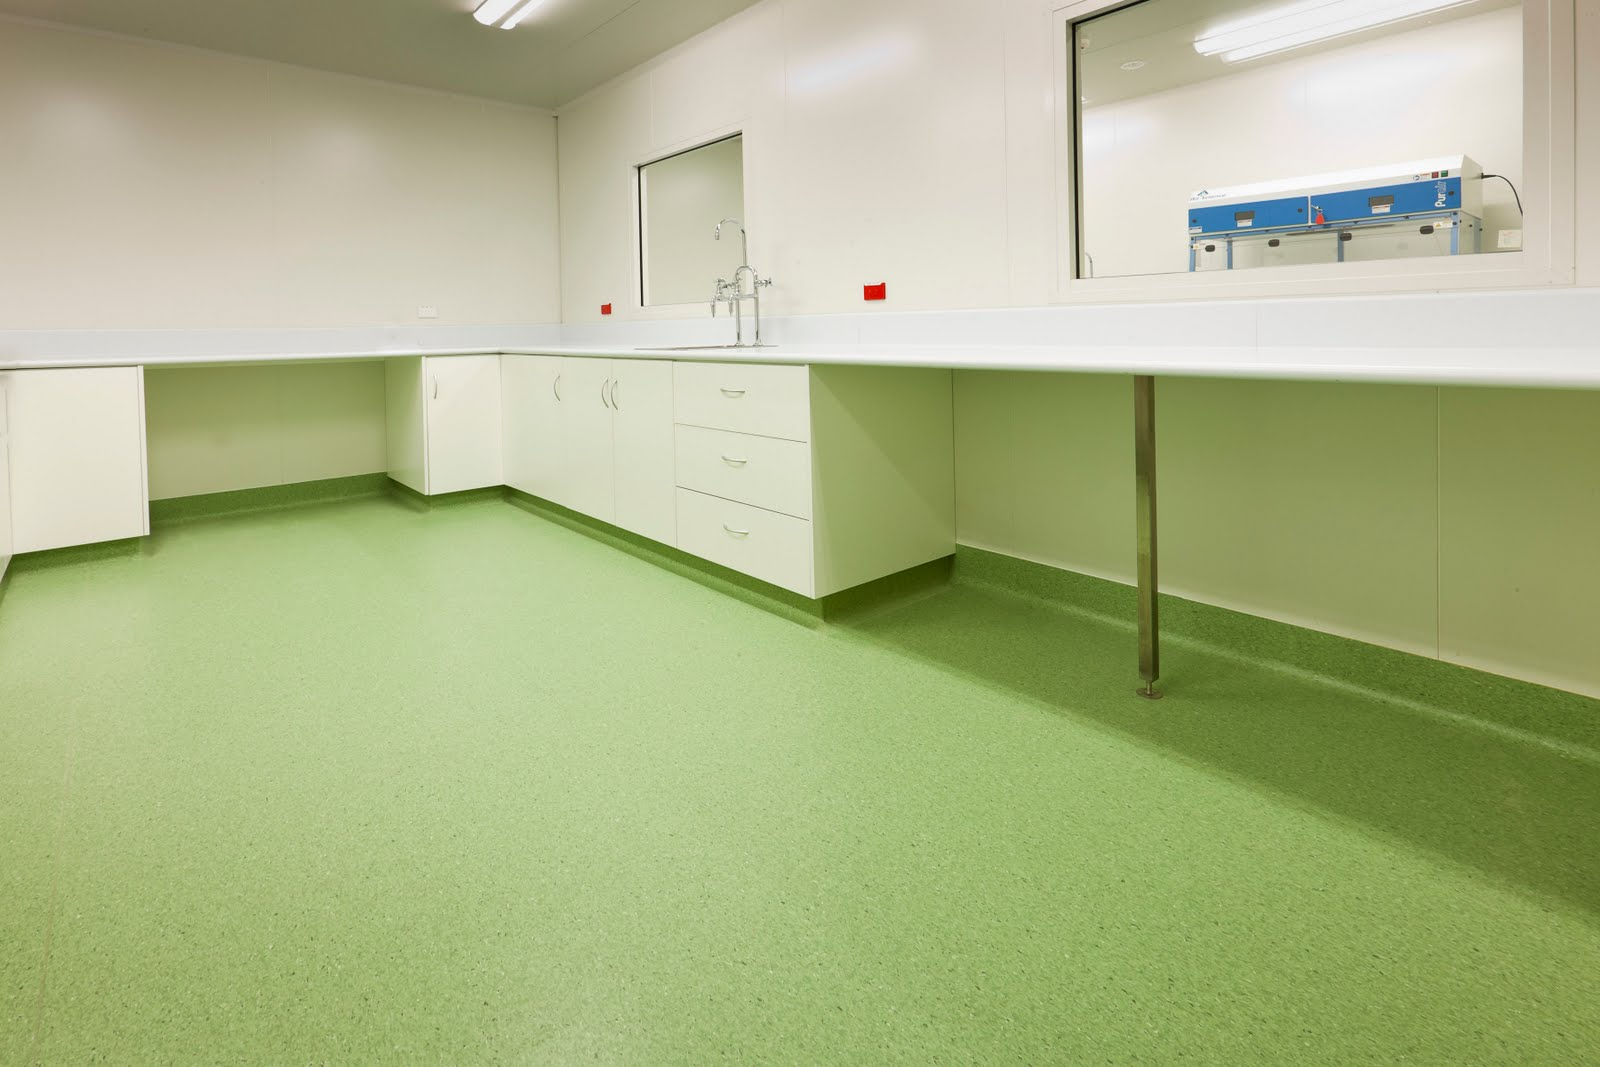 Commercial Sheet Vinyl Flooring The